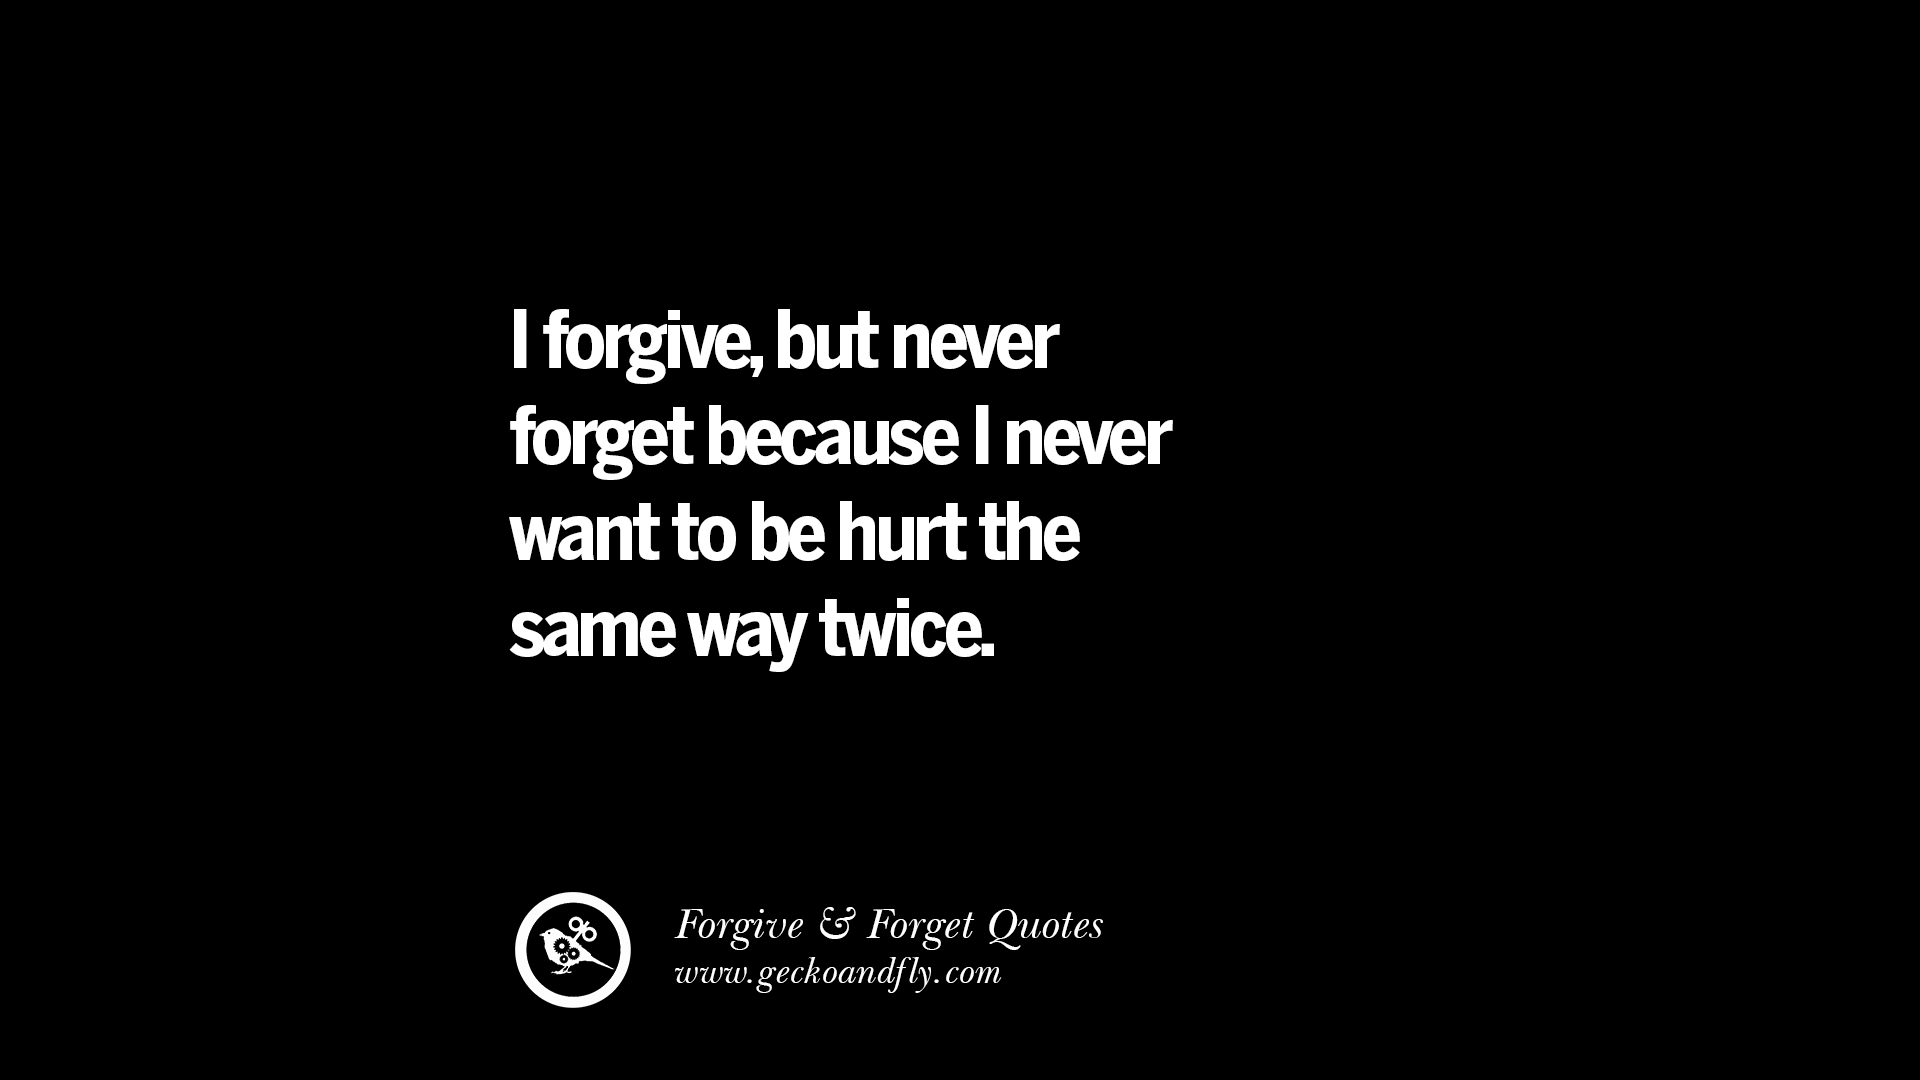 Quotes Hurt 50 Quotes On Forgive And Forget When Someone Hurts You In A